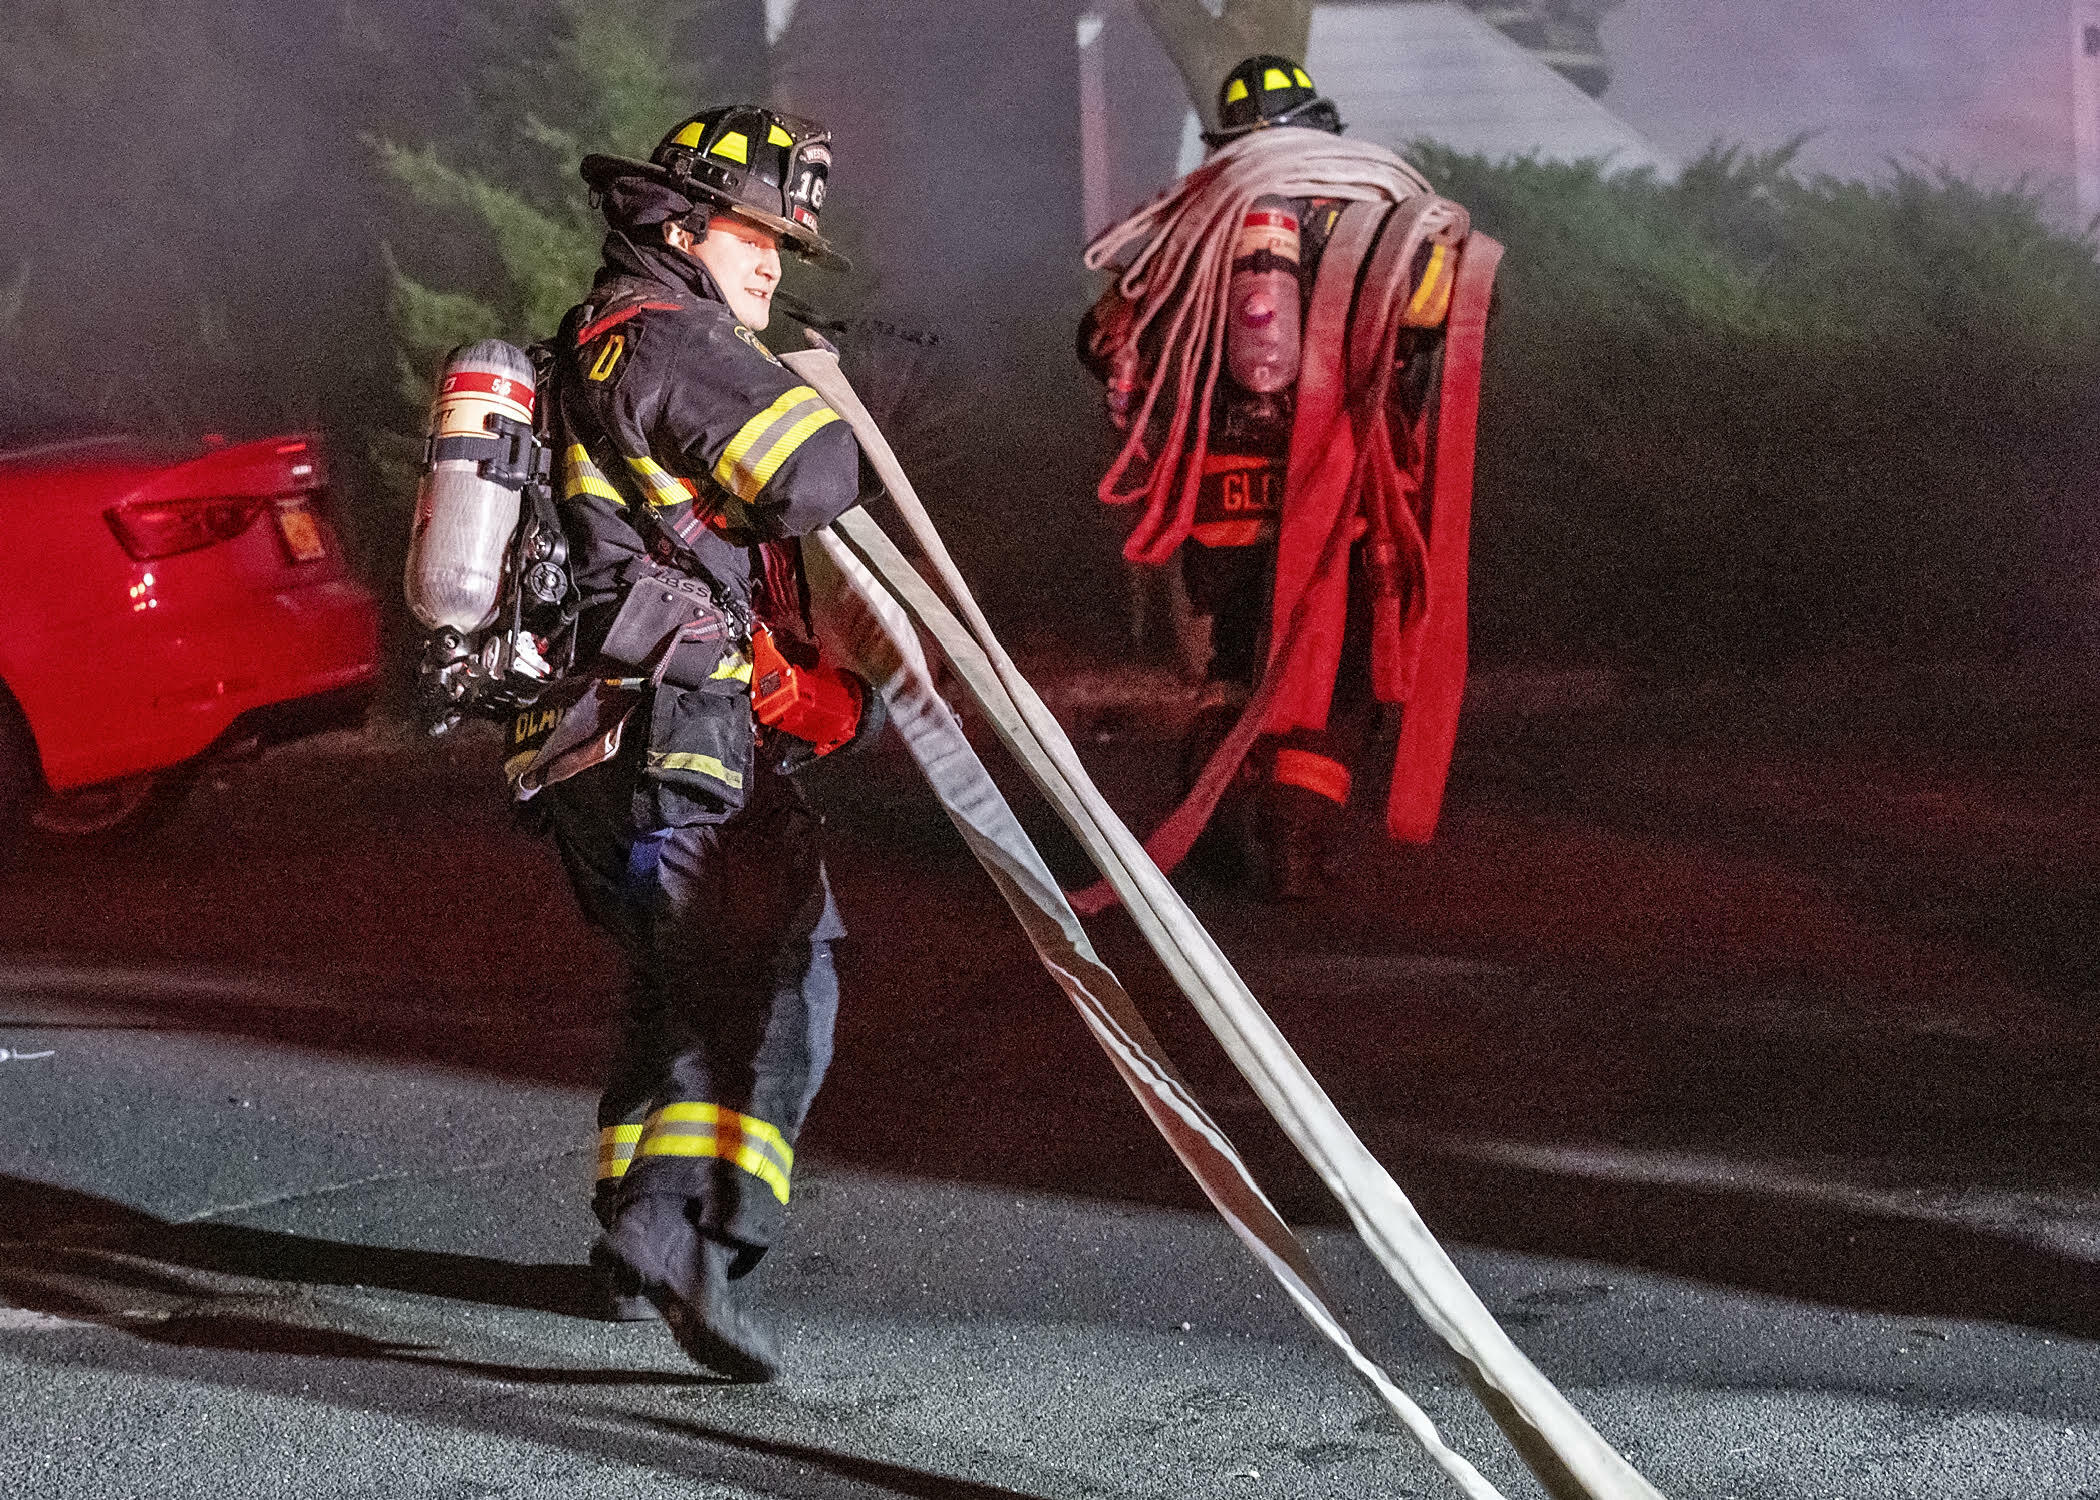 Firefighter reilly bean 9left) and ex-captain tom Glover laying hose. COURTESY WESTHAMPTON BEACH FIRE DEPARTMENT